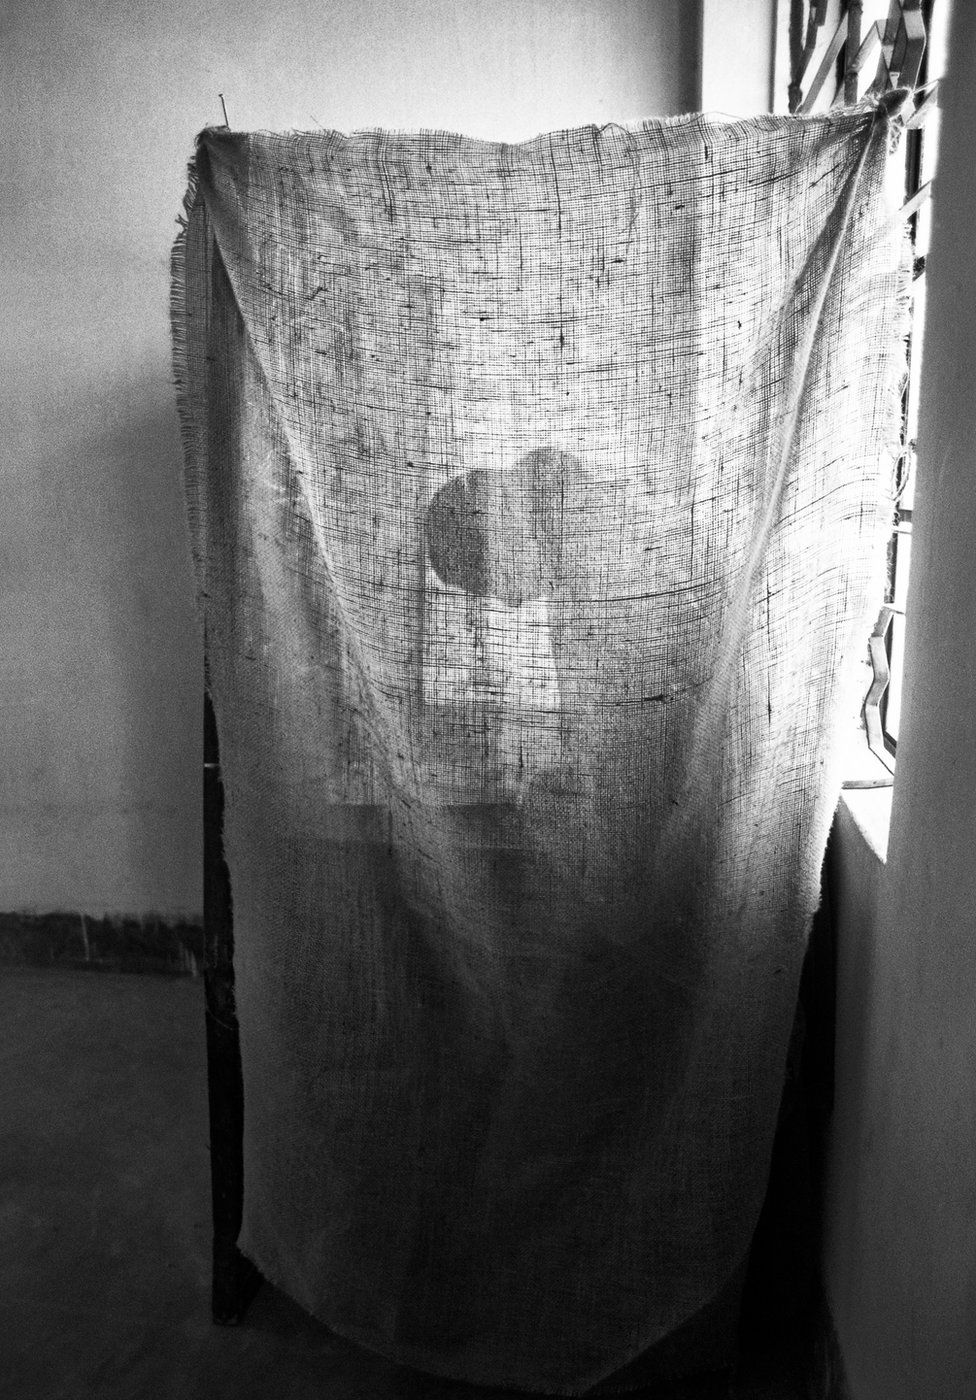 Shadow of a woman casting a vote behind a curtain